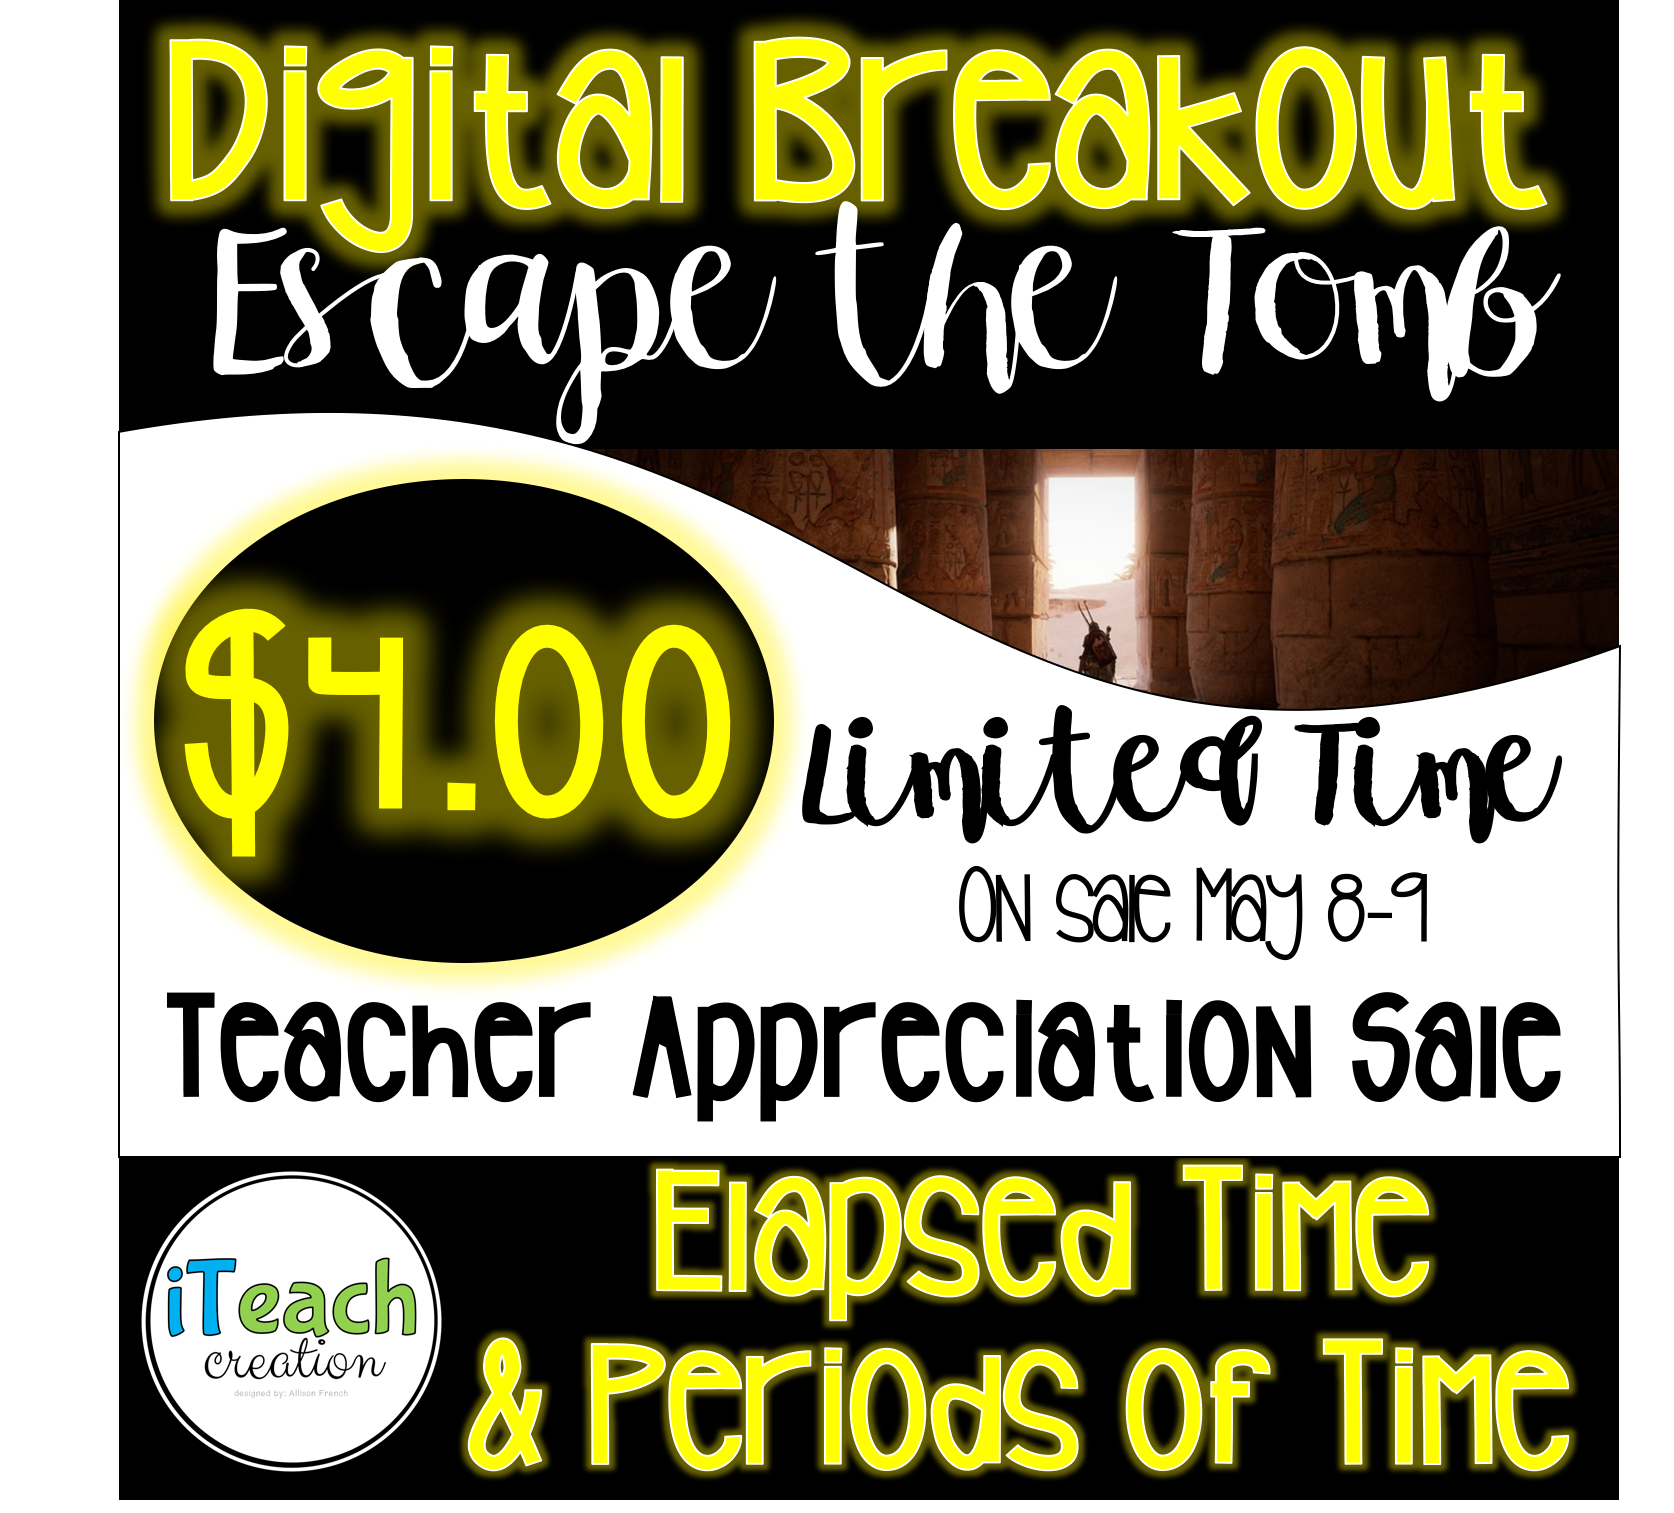 Digital breakout elapsed time and periods of time escape room digital breakout elapsed time and periods of time escape room fandeluxe Choice Image